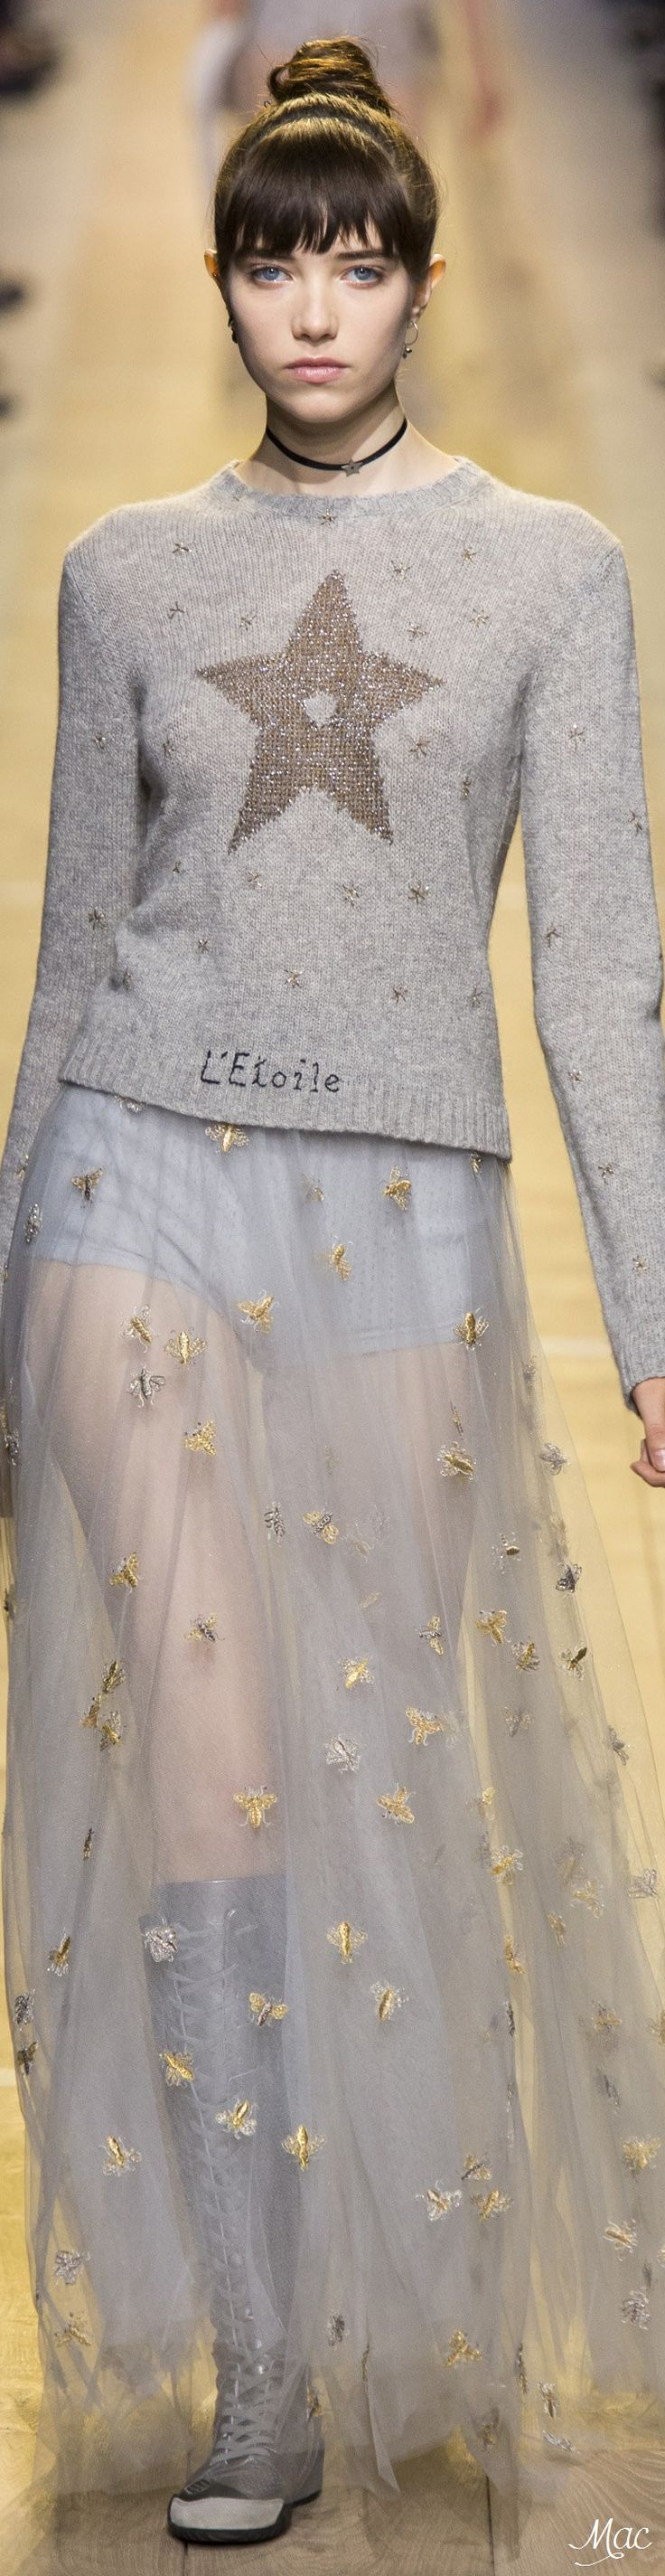 Spring 2017 Ready-to-Wear Christian Dior